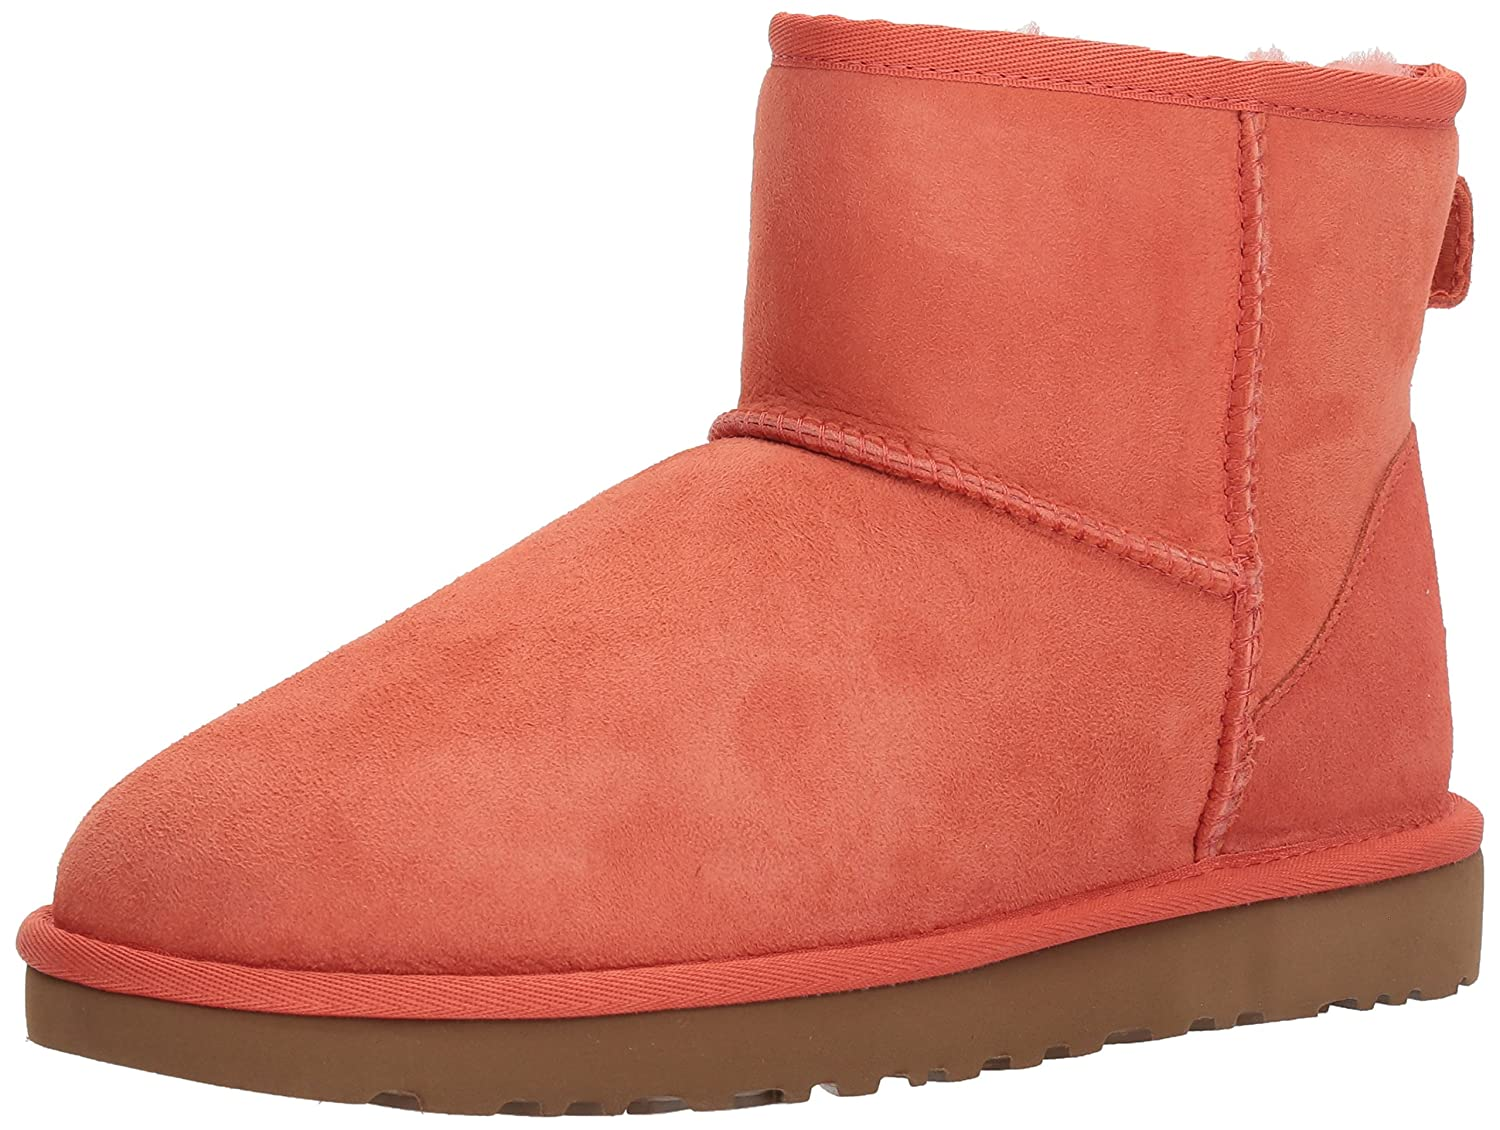 d0fbc722f276 Amazon.com | UGG Women's Classic Mini II Winter Boot | Ankle & Bootie